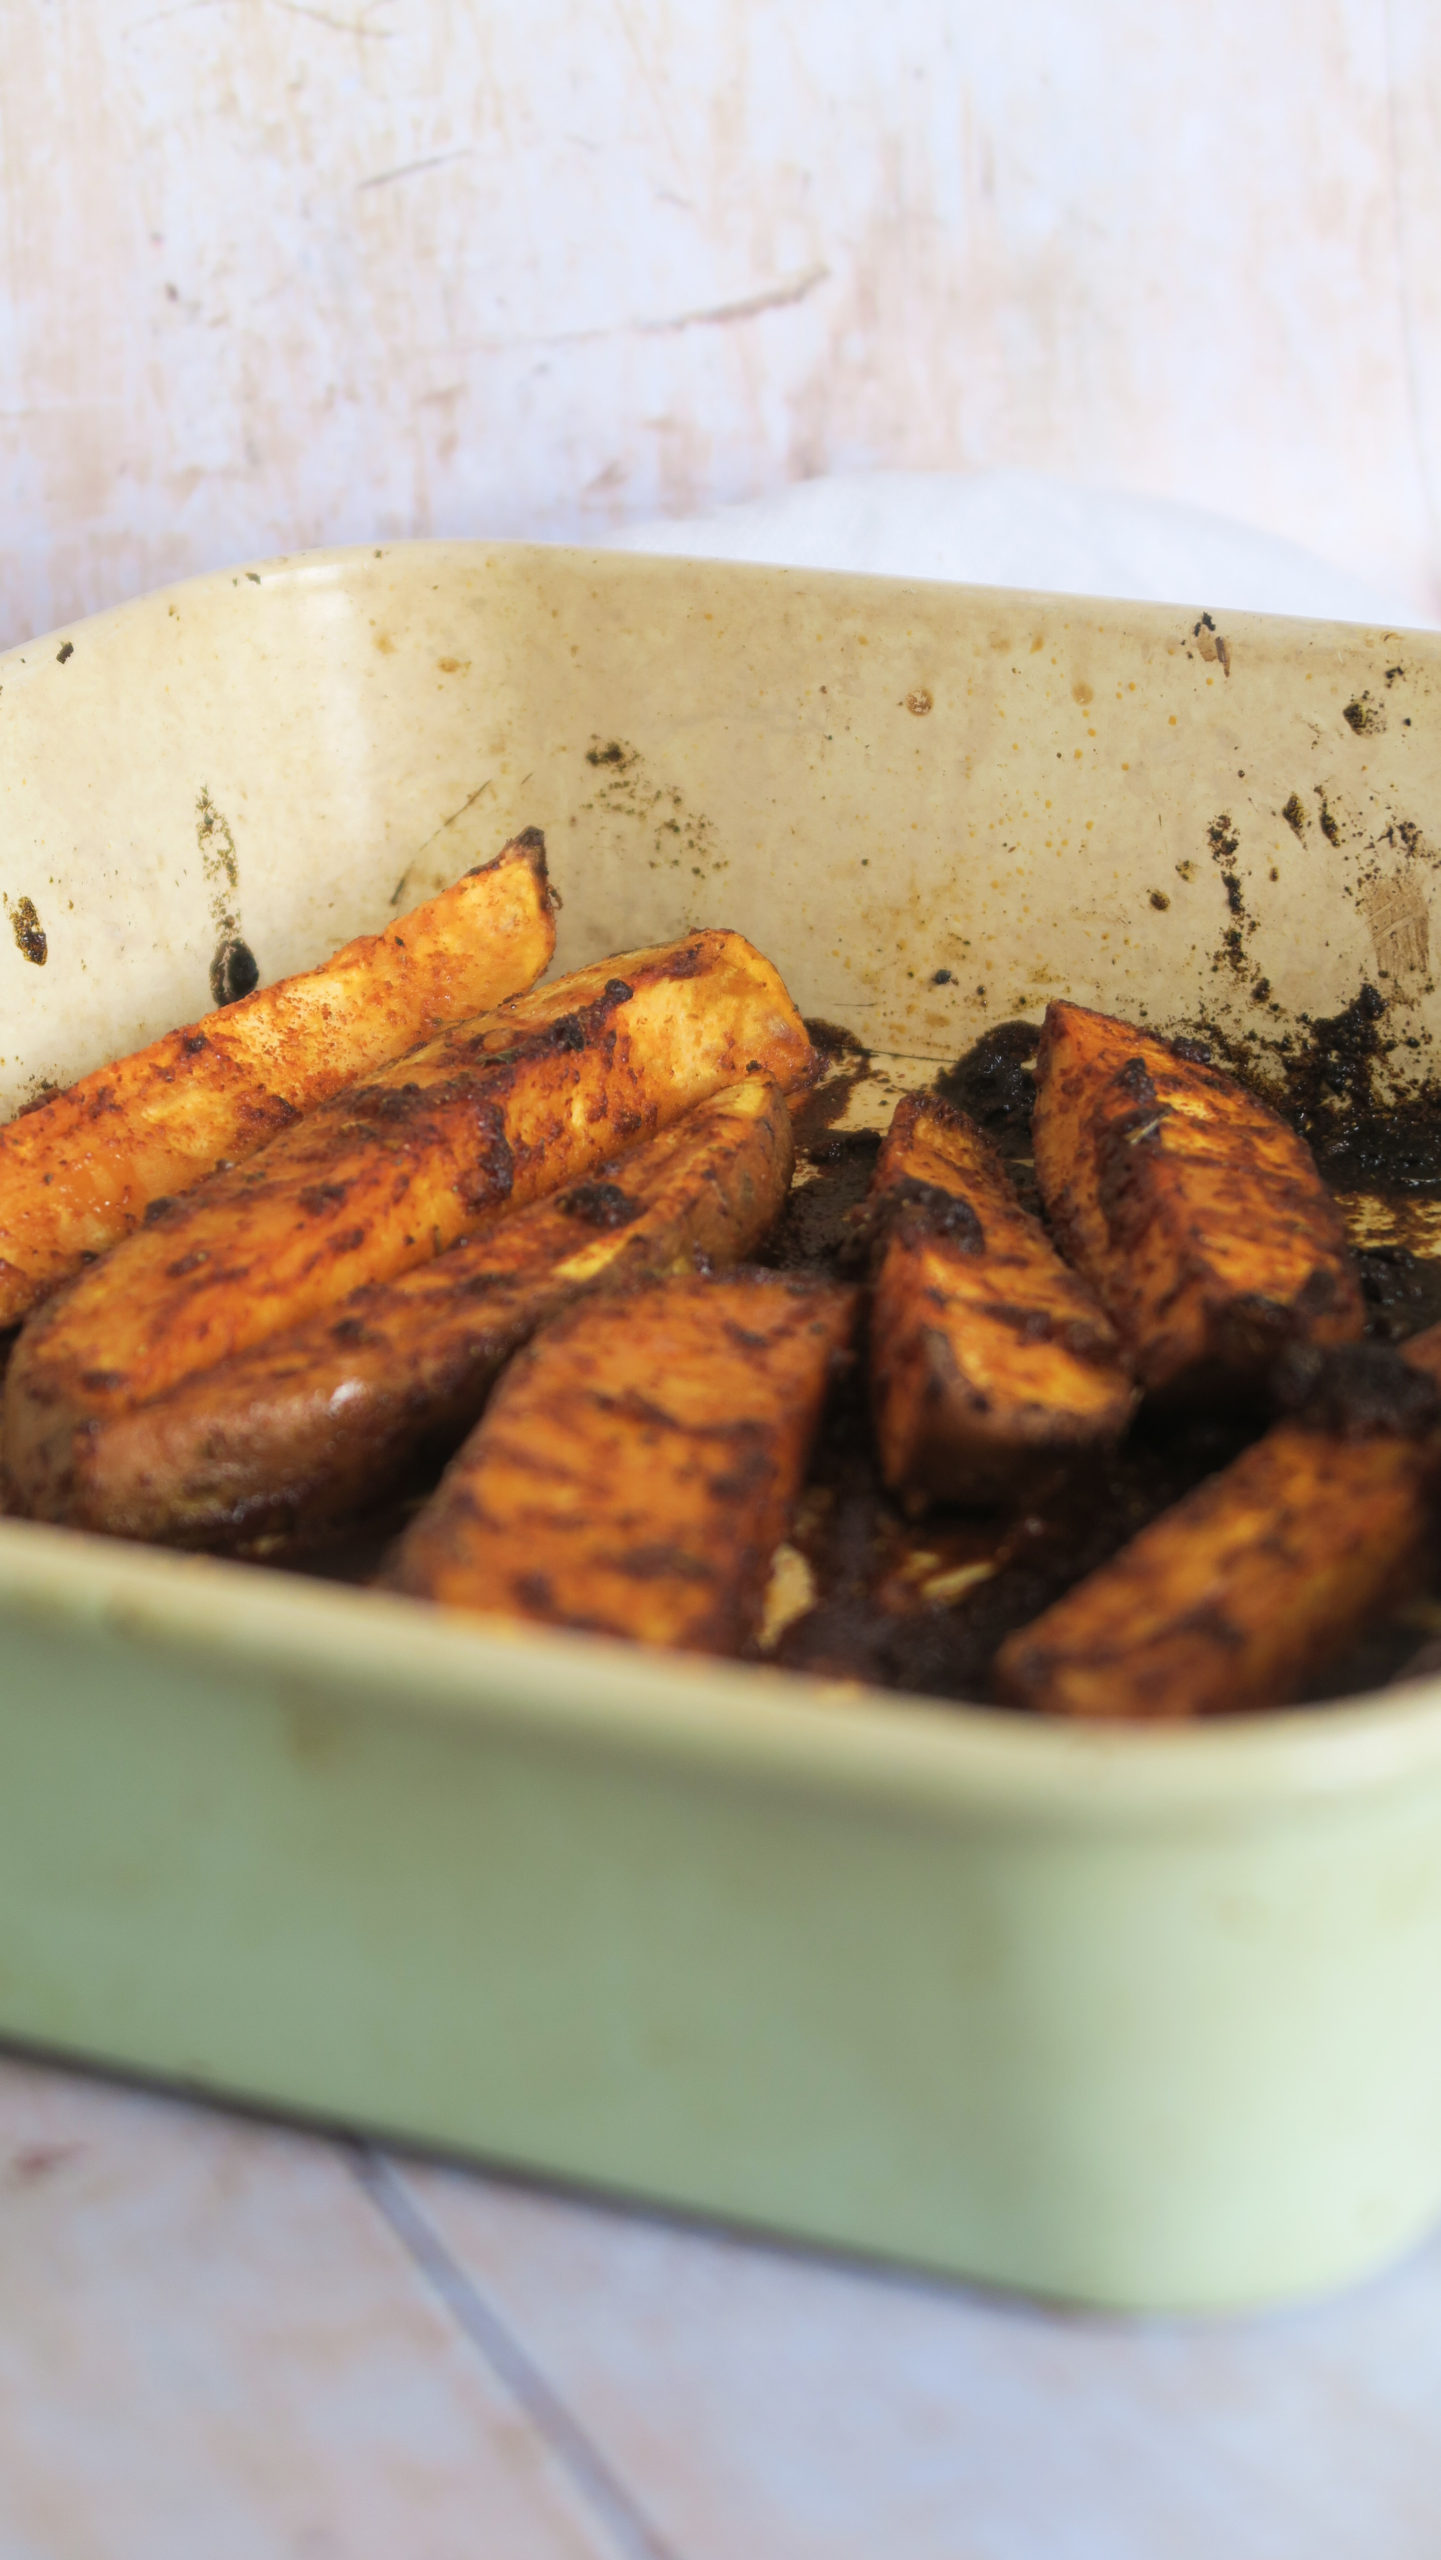 Peri peri sweet potato wedges in a green baking tray